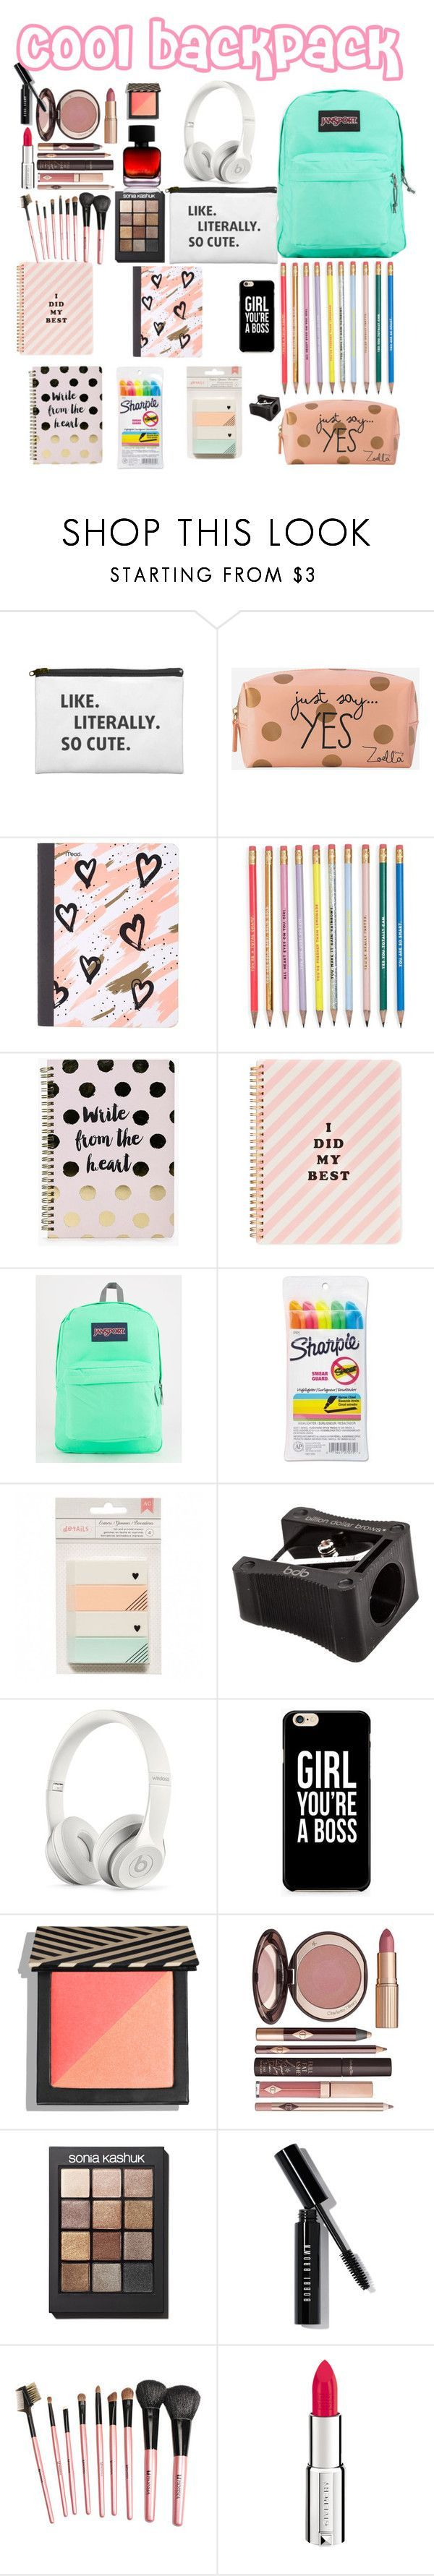 """""""What is in my backpack - cool backpack"""" by littlestylistn ❤ liked on Polyvore featuring Zoella Beauty, Mead, Boohoo, ban.do, JanSport, Sharpie, Billion Dollar Brows, Beats by Dr. Dre, Charlotte Tilbury and Sonia Kashuk"""